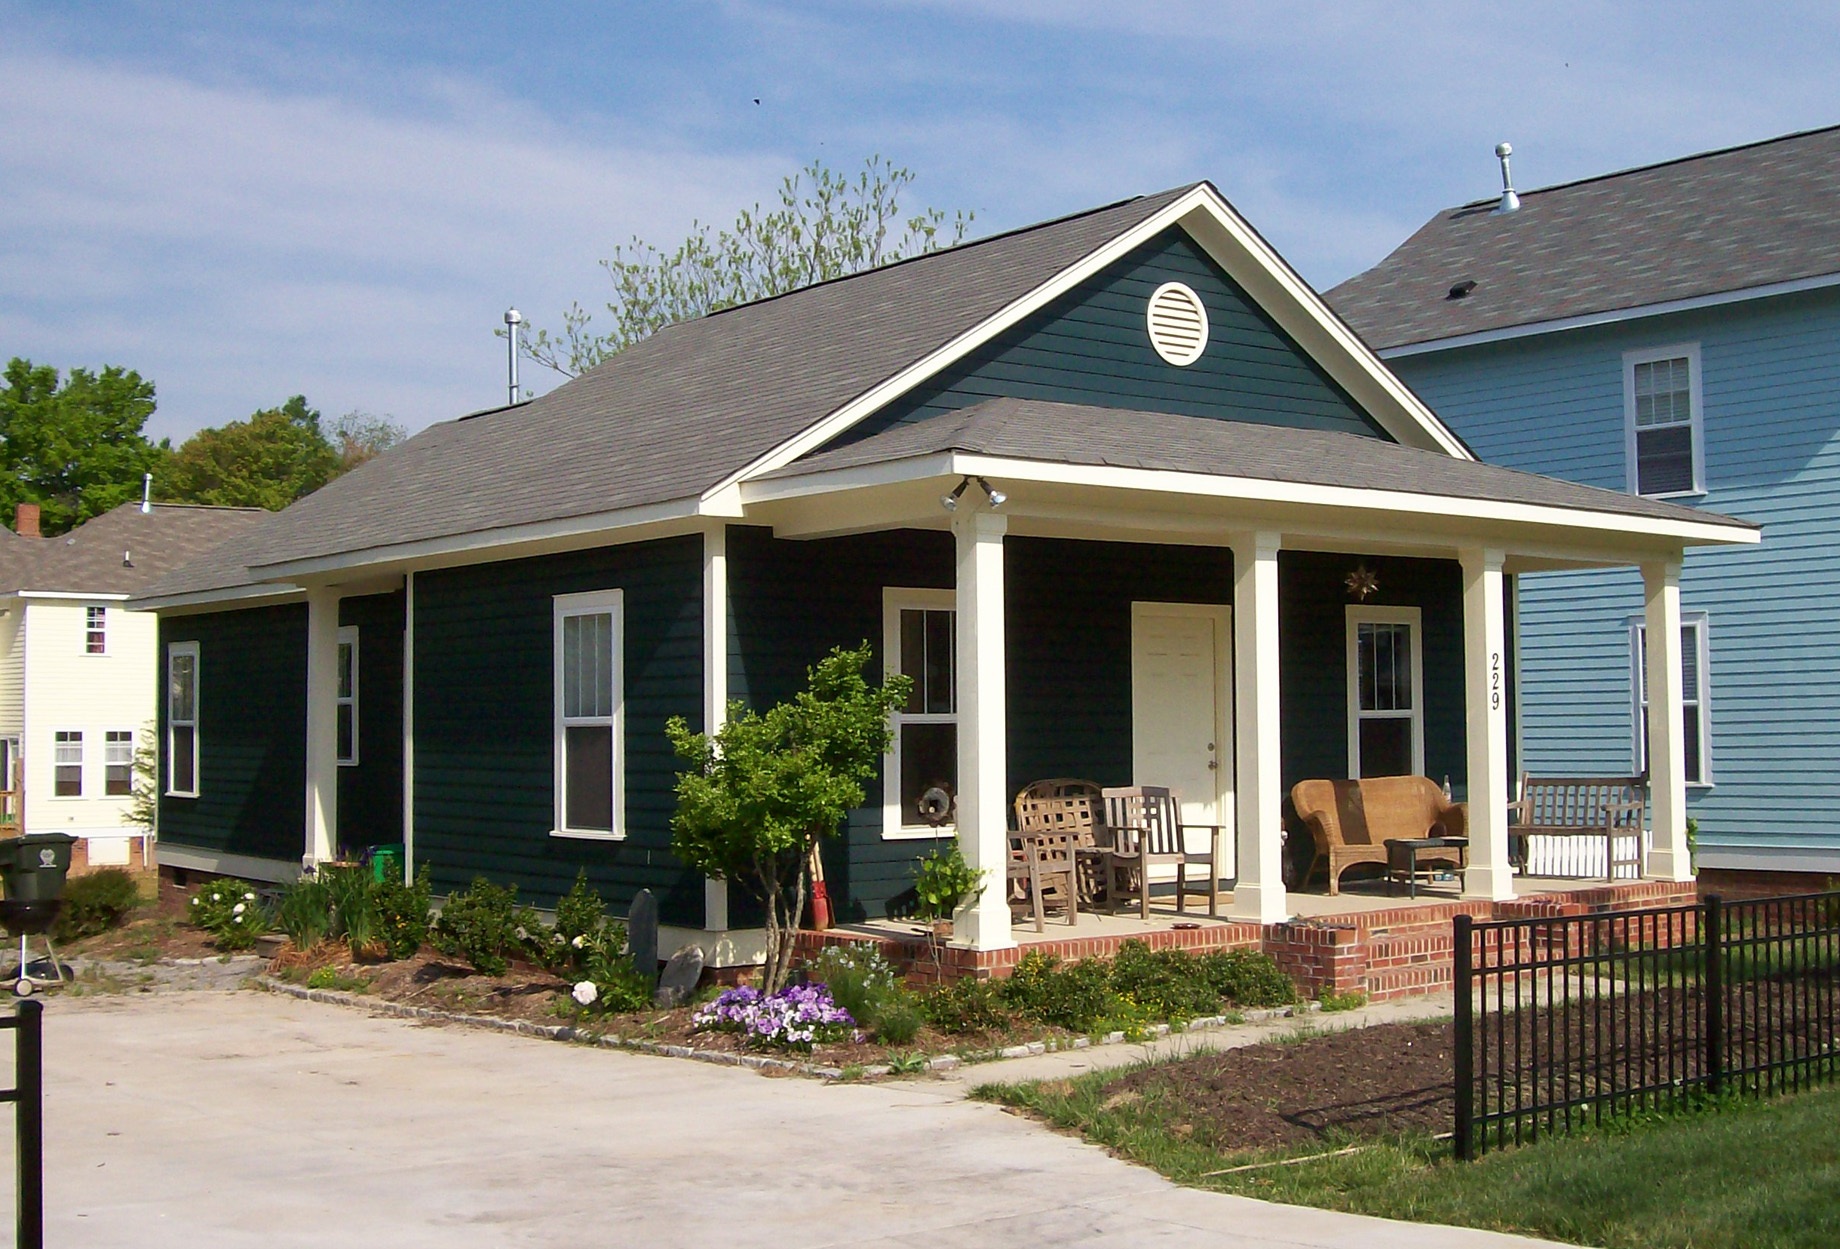 Architectural designs for Architectural designs for bungalows